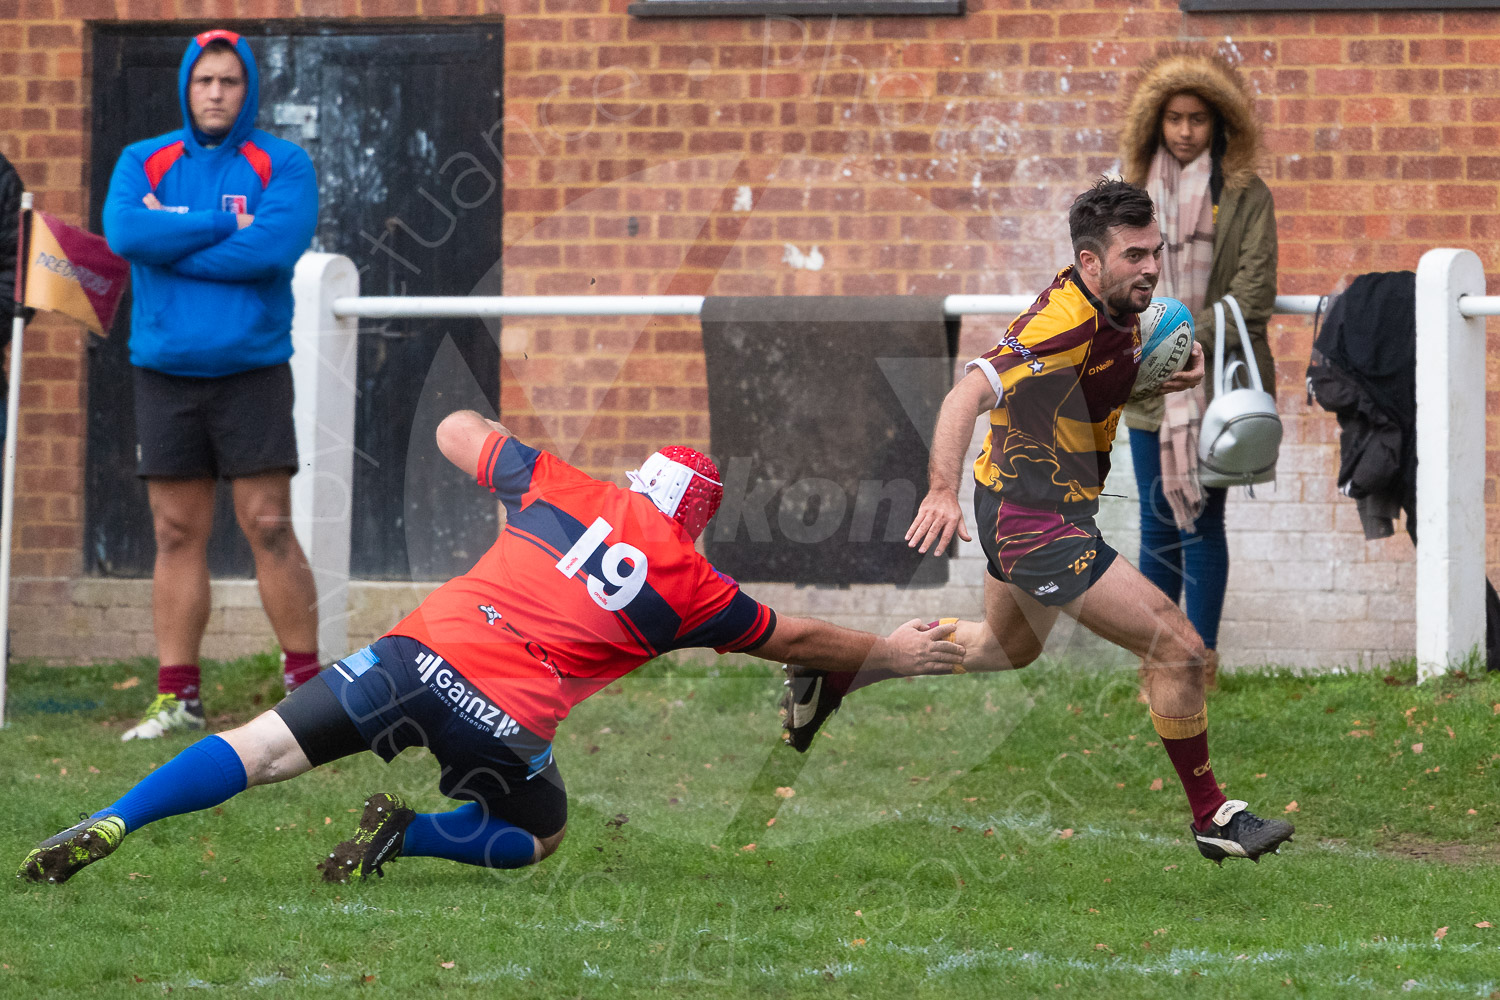 20181027 Amp Extras vs St Neots 2nd XV #2599